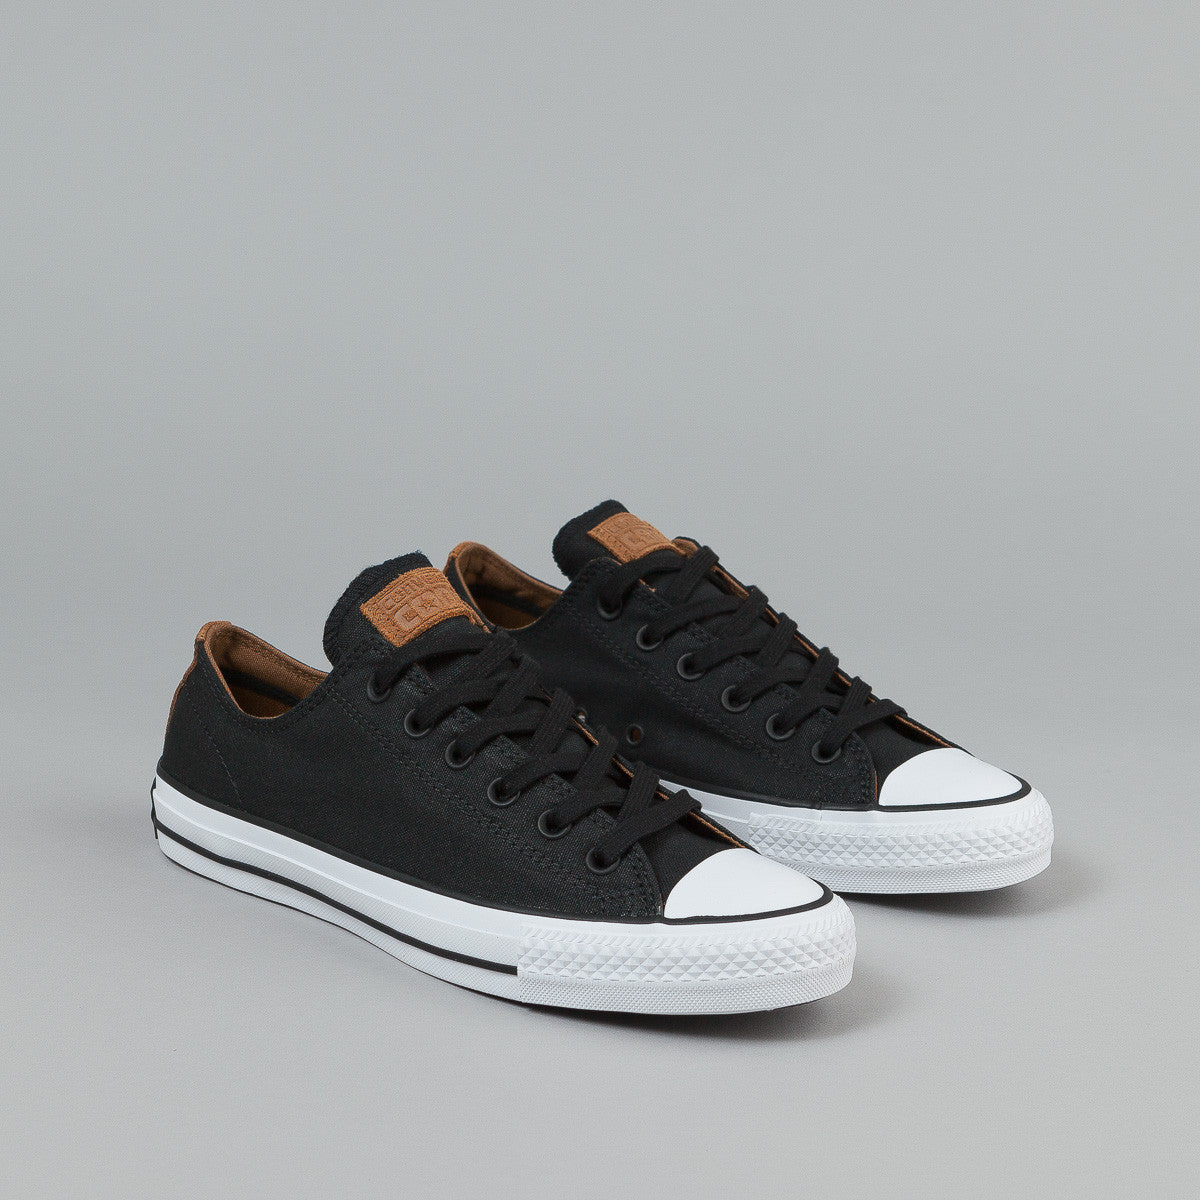 Converse CTAS Pro OX Shoes (Workwear Canvas) - Black / Rubber / White